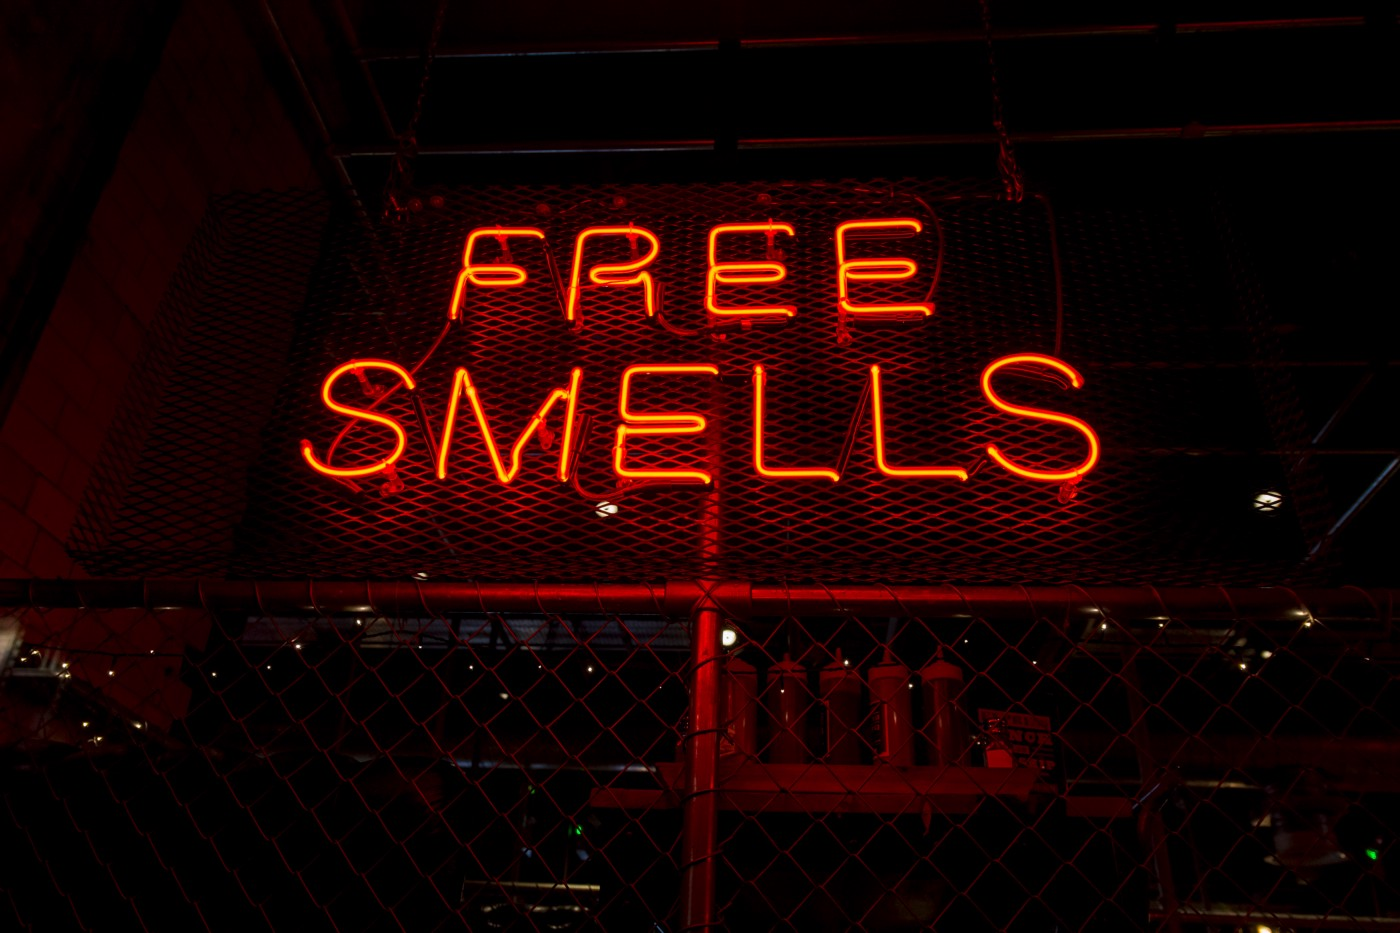 Bright signage advertising Free Smells